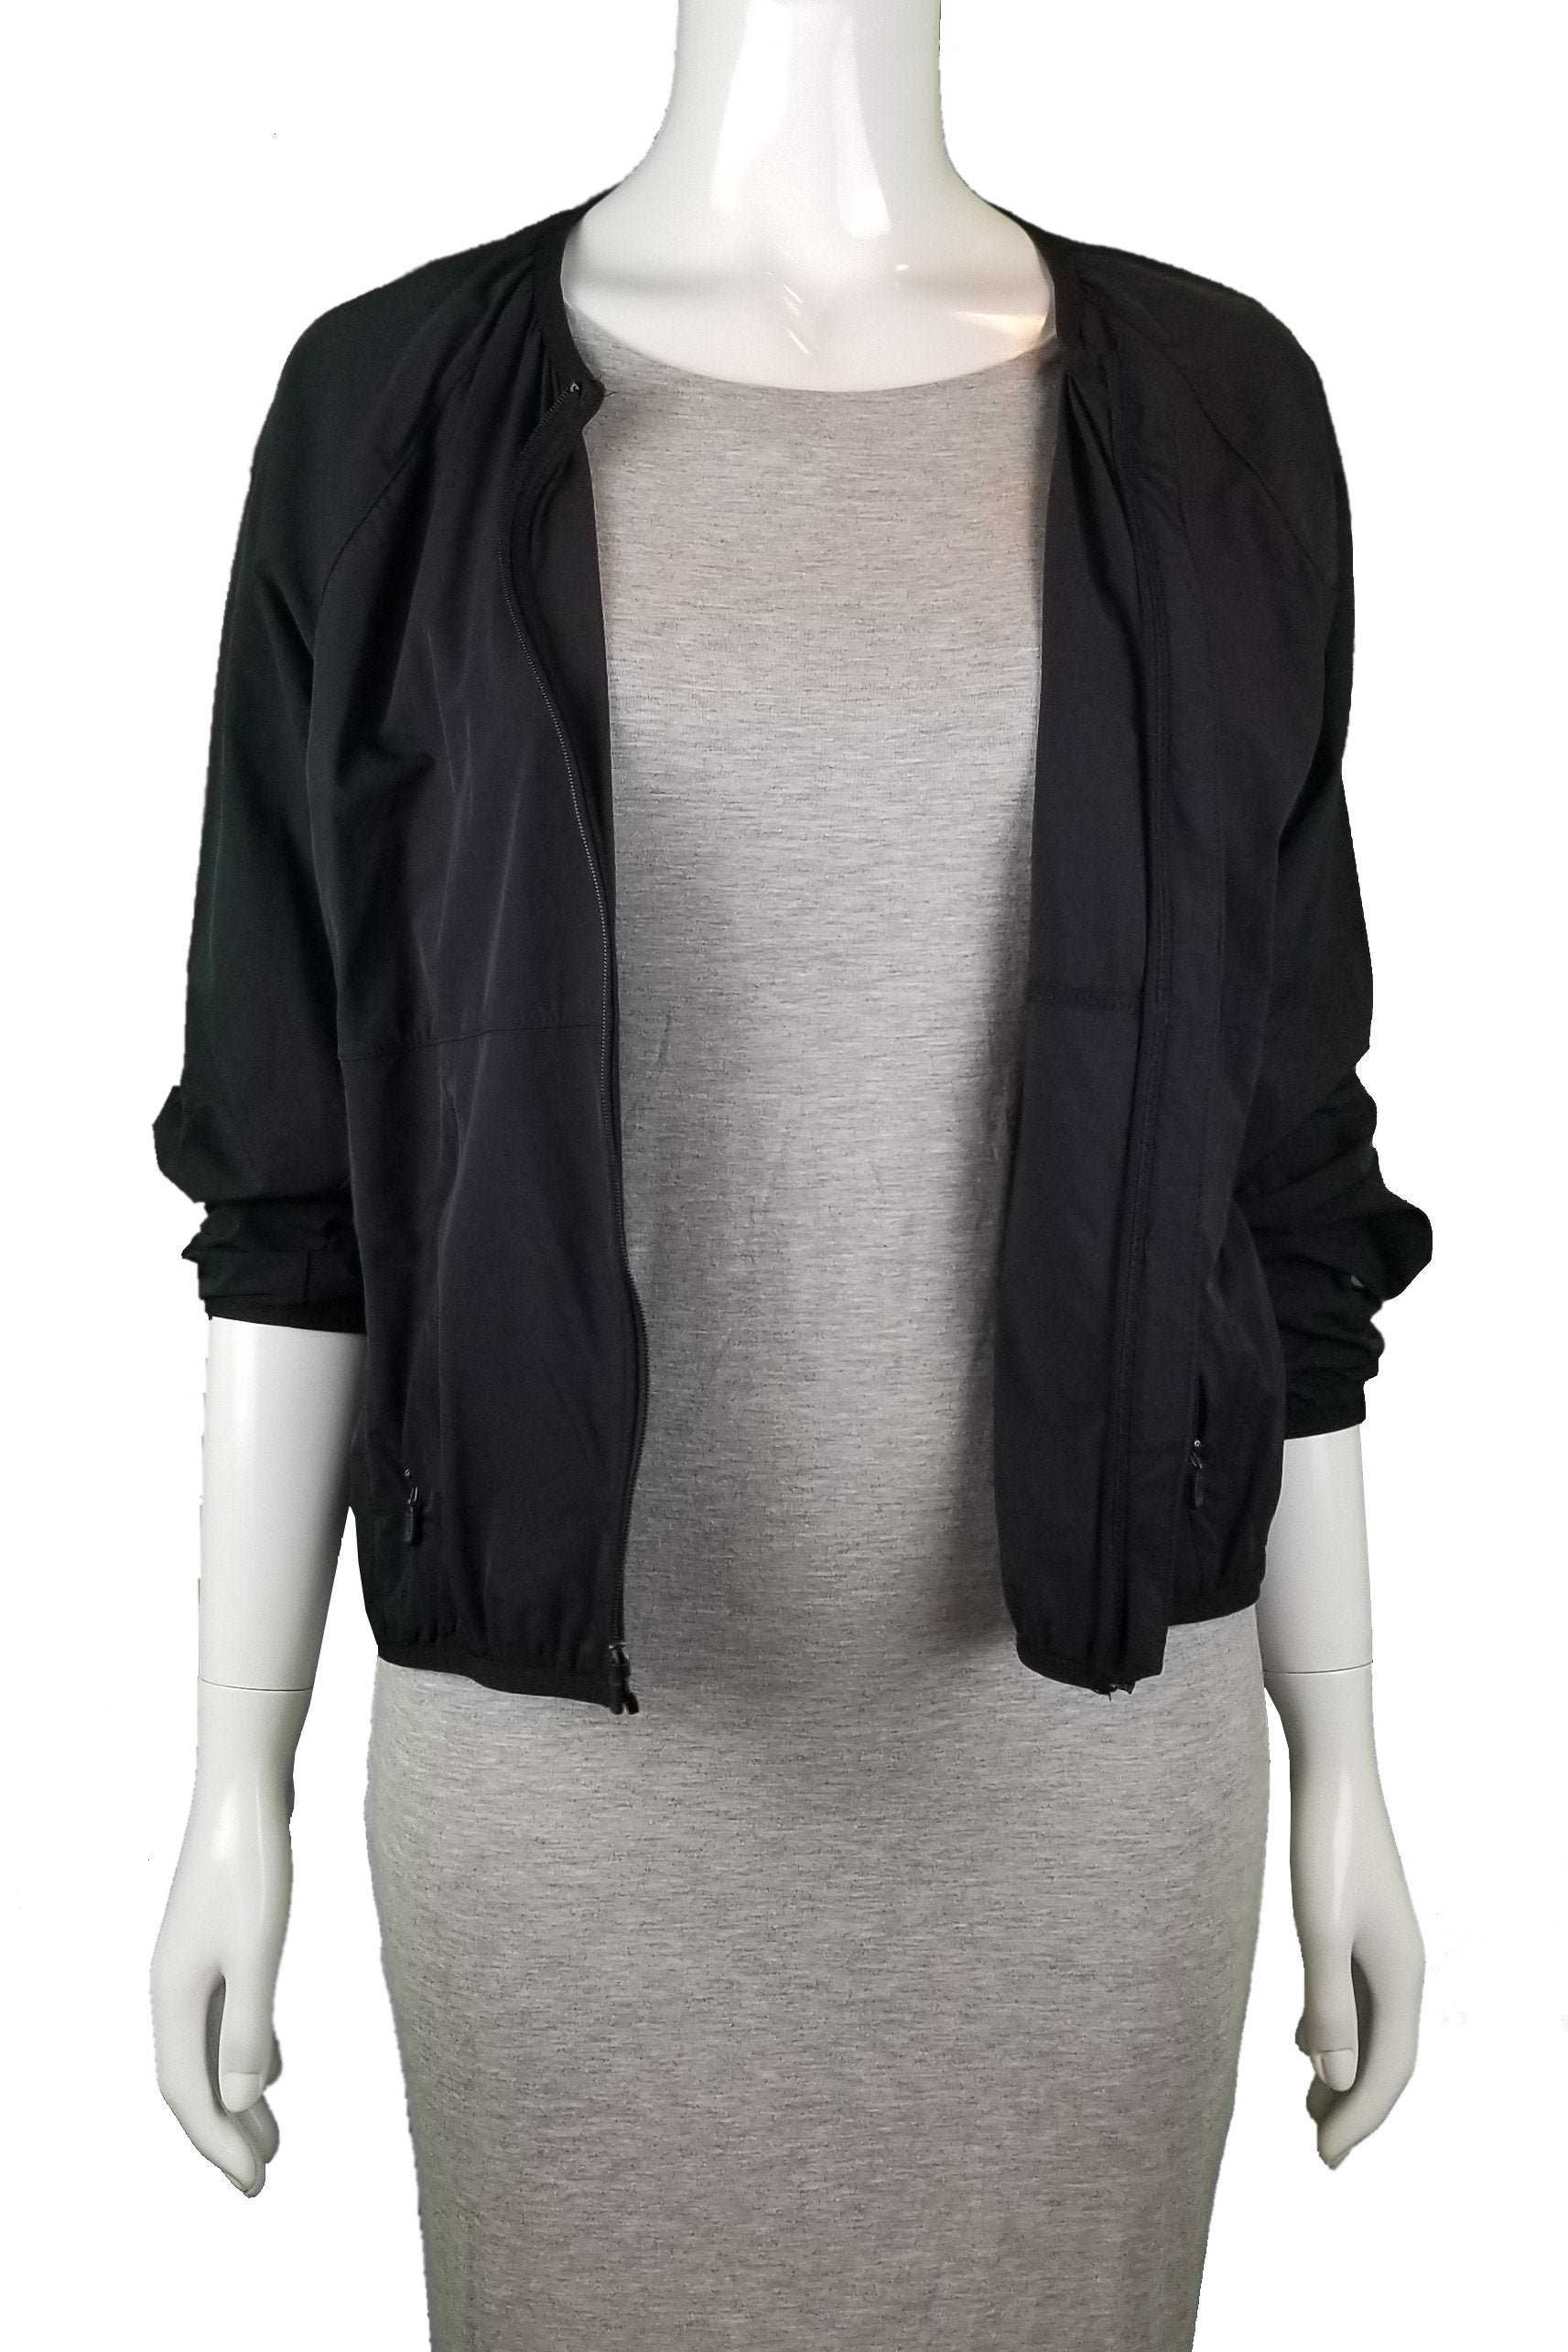 Nike Light Sport Jacket, Super light simple sport jacket that you can wear in various occasions, Black, 80% Nylon 20% Spandex, women's Jackets & Coats, women's Black Jackets & Coats, Nike women's Jackets & Coats, women's sport jacket, women's black sport jacket with front pockets, women's black bomber jacket